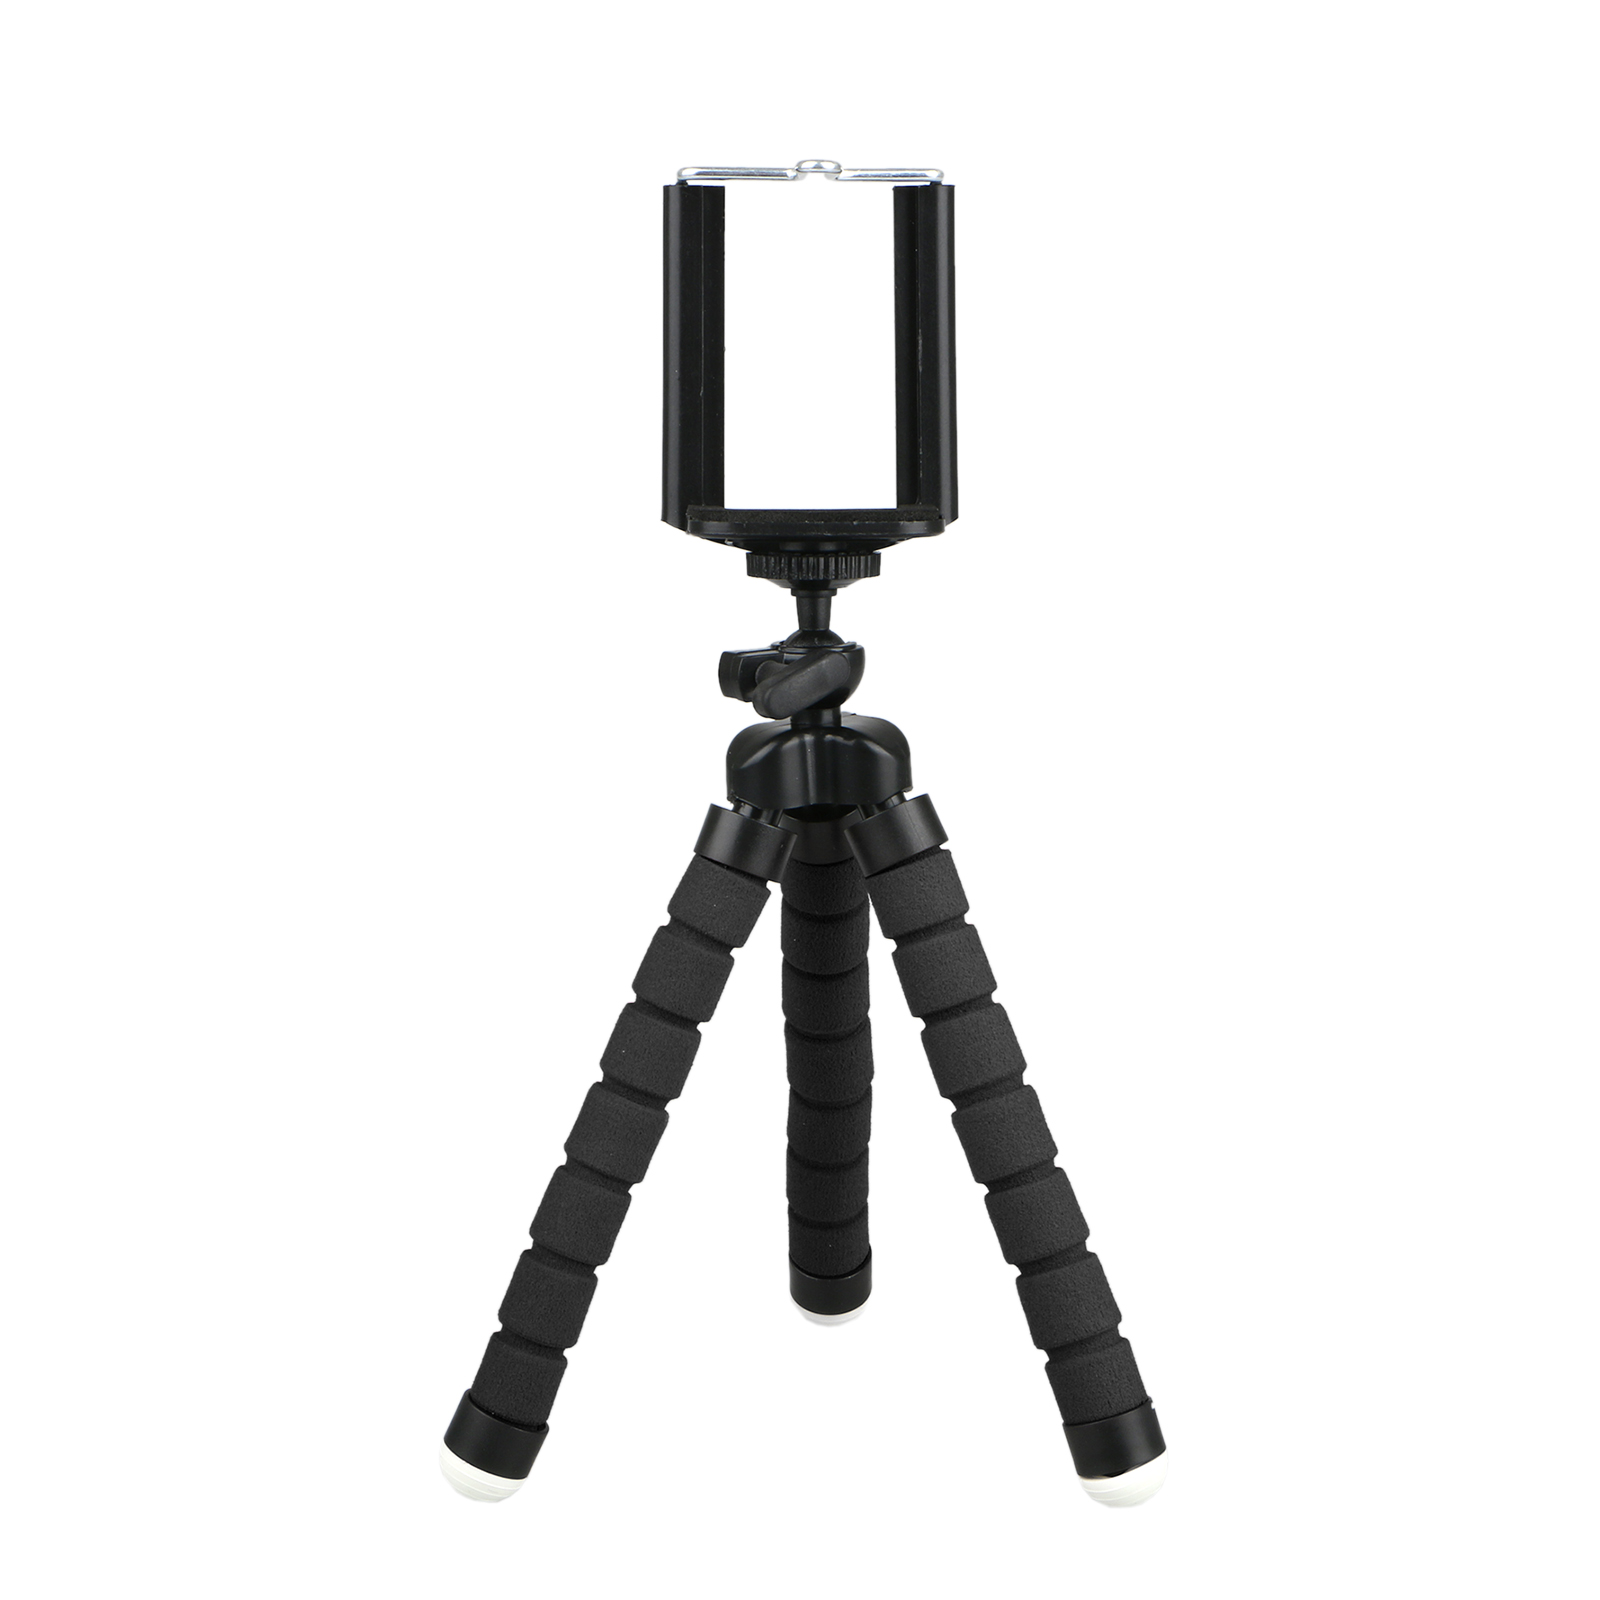 Flexible-Mini-Octopus-Tripod-Bracket-Holder-Mount-for-iPhone-X-Cell-Phone-Camera